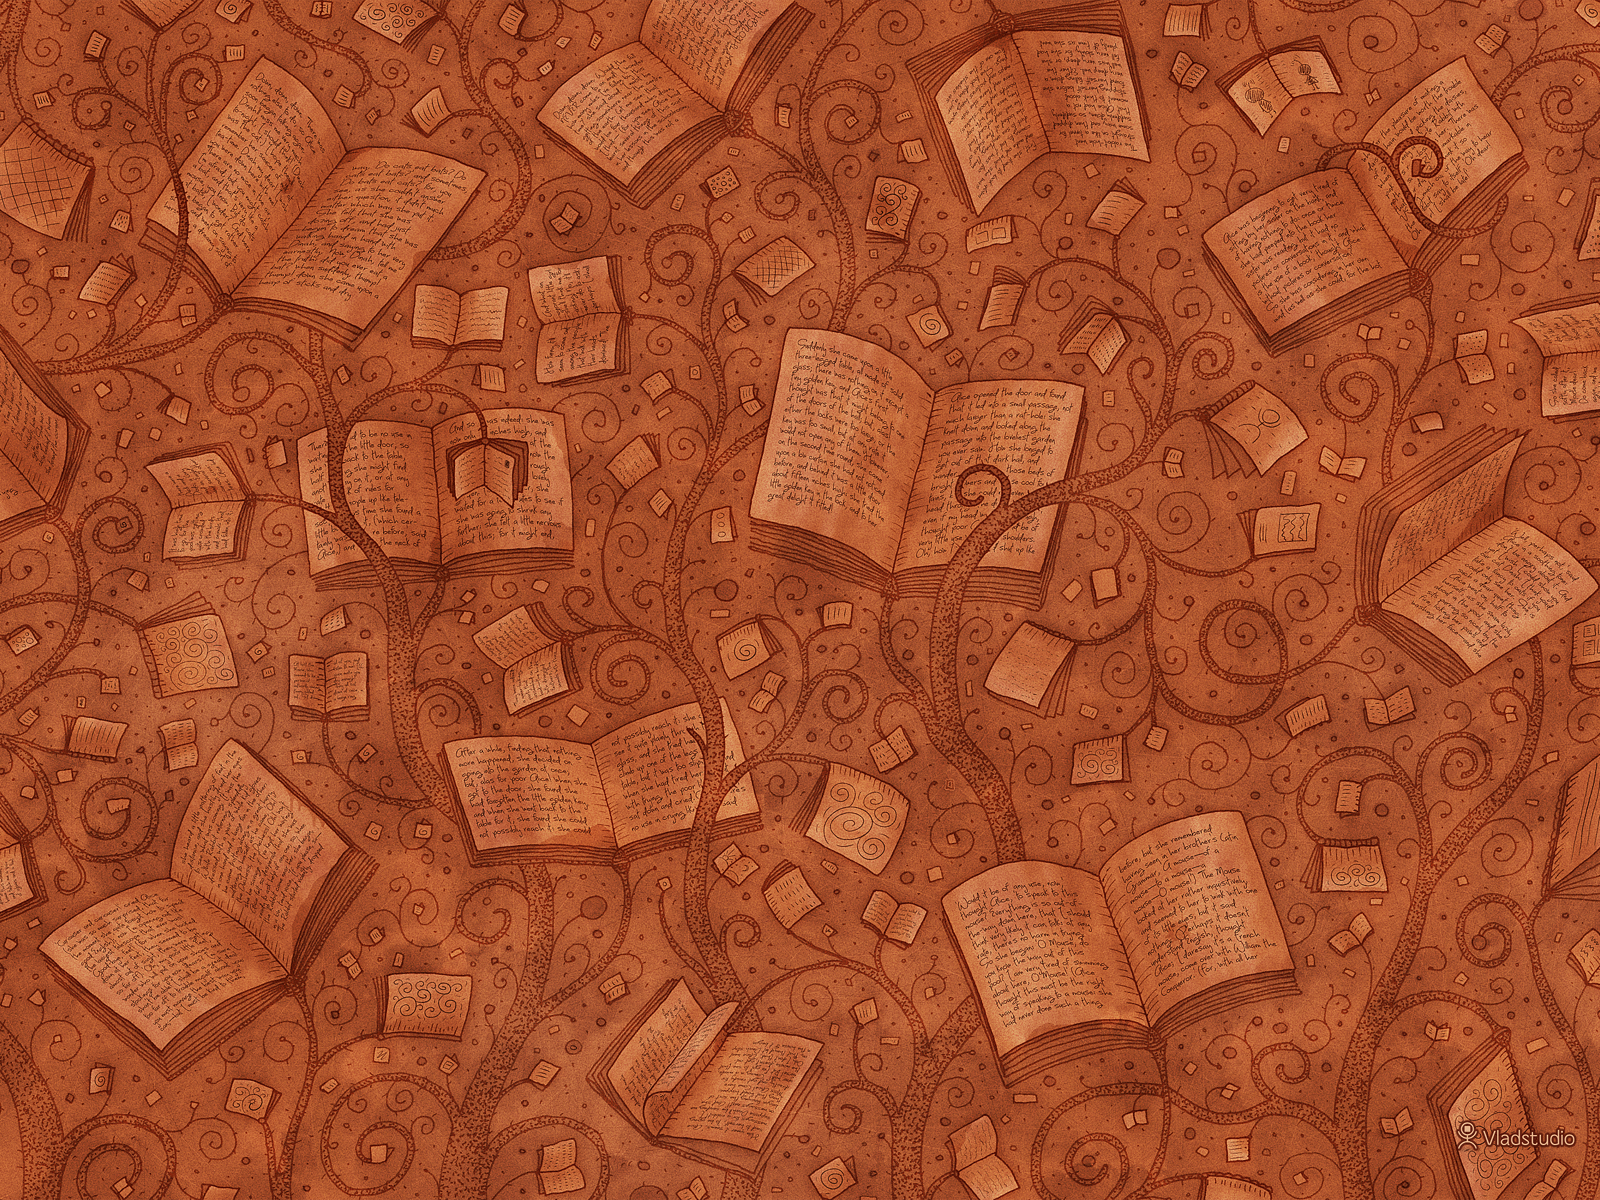 Books Color 2 by vladstudio